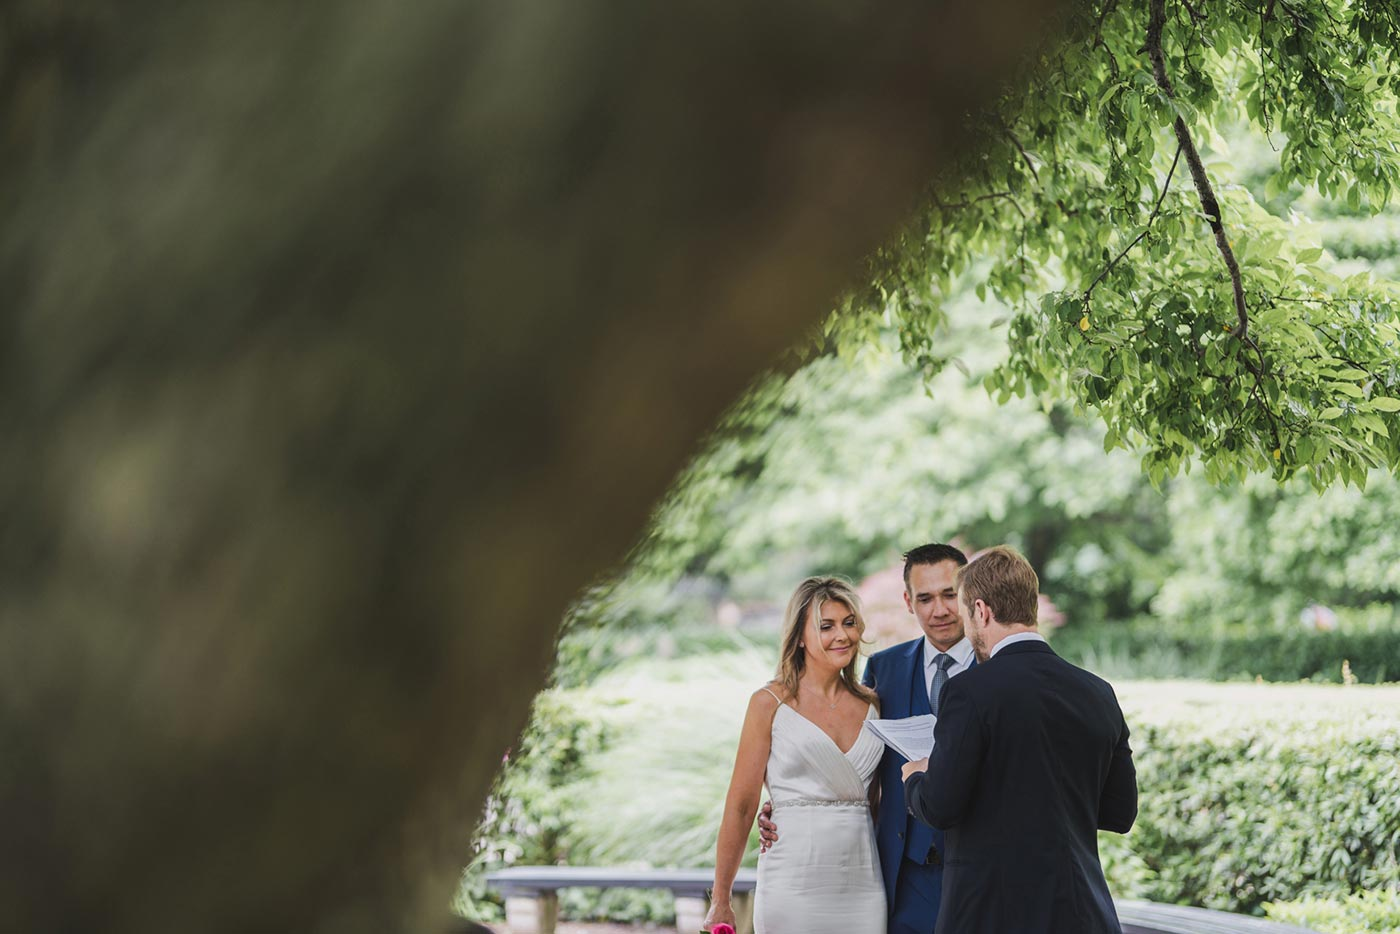 Weddings by Hanel -06.01.19 - Jane & Neil - Conservatory Garden Elopement - 12